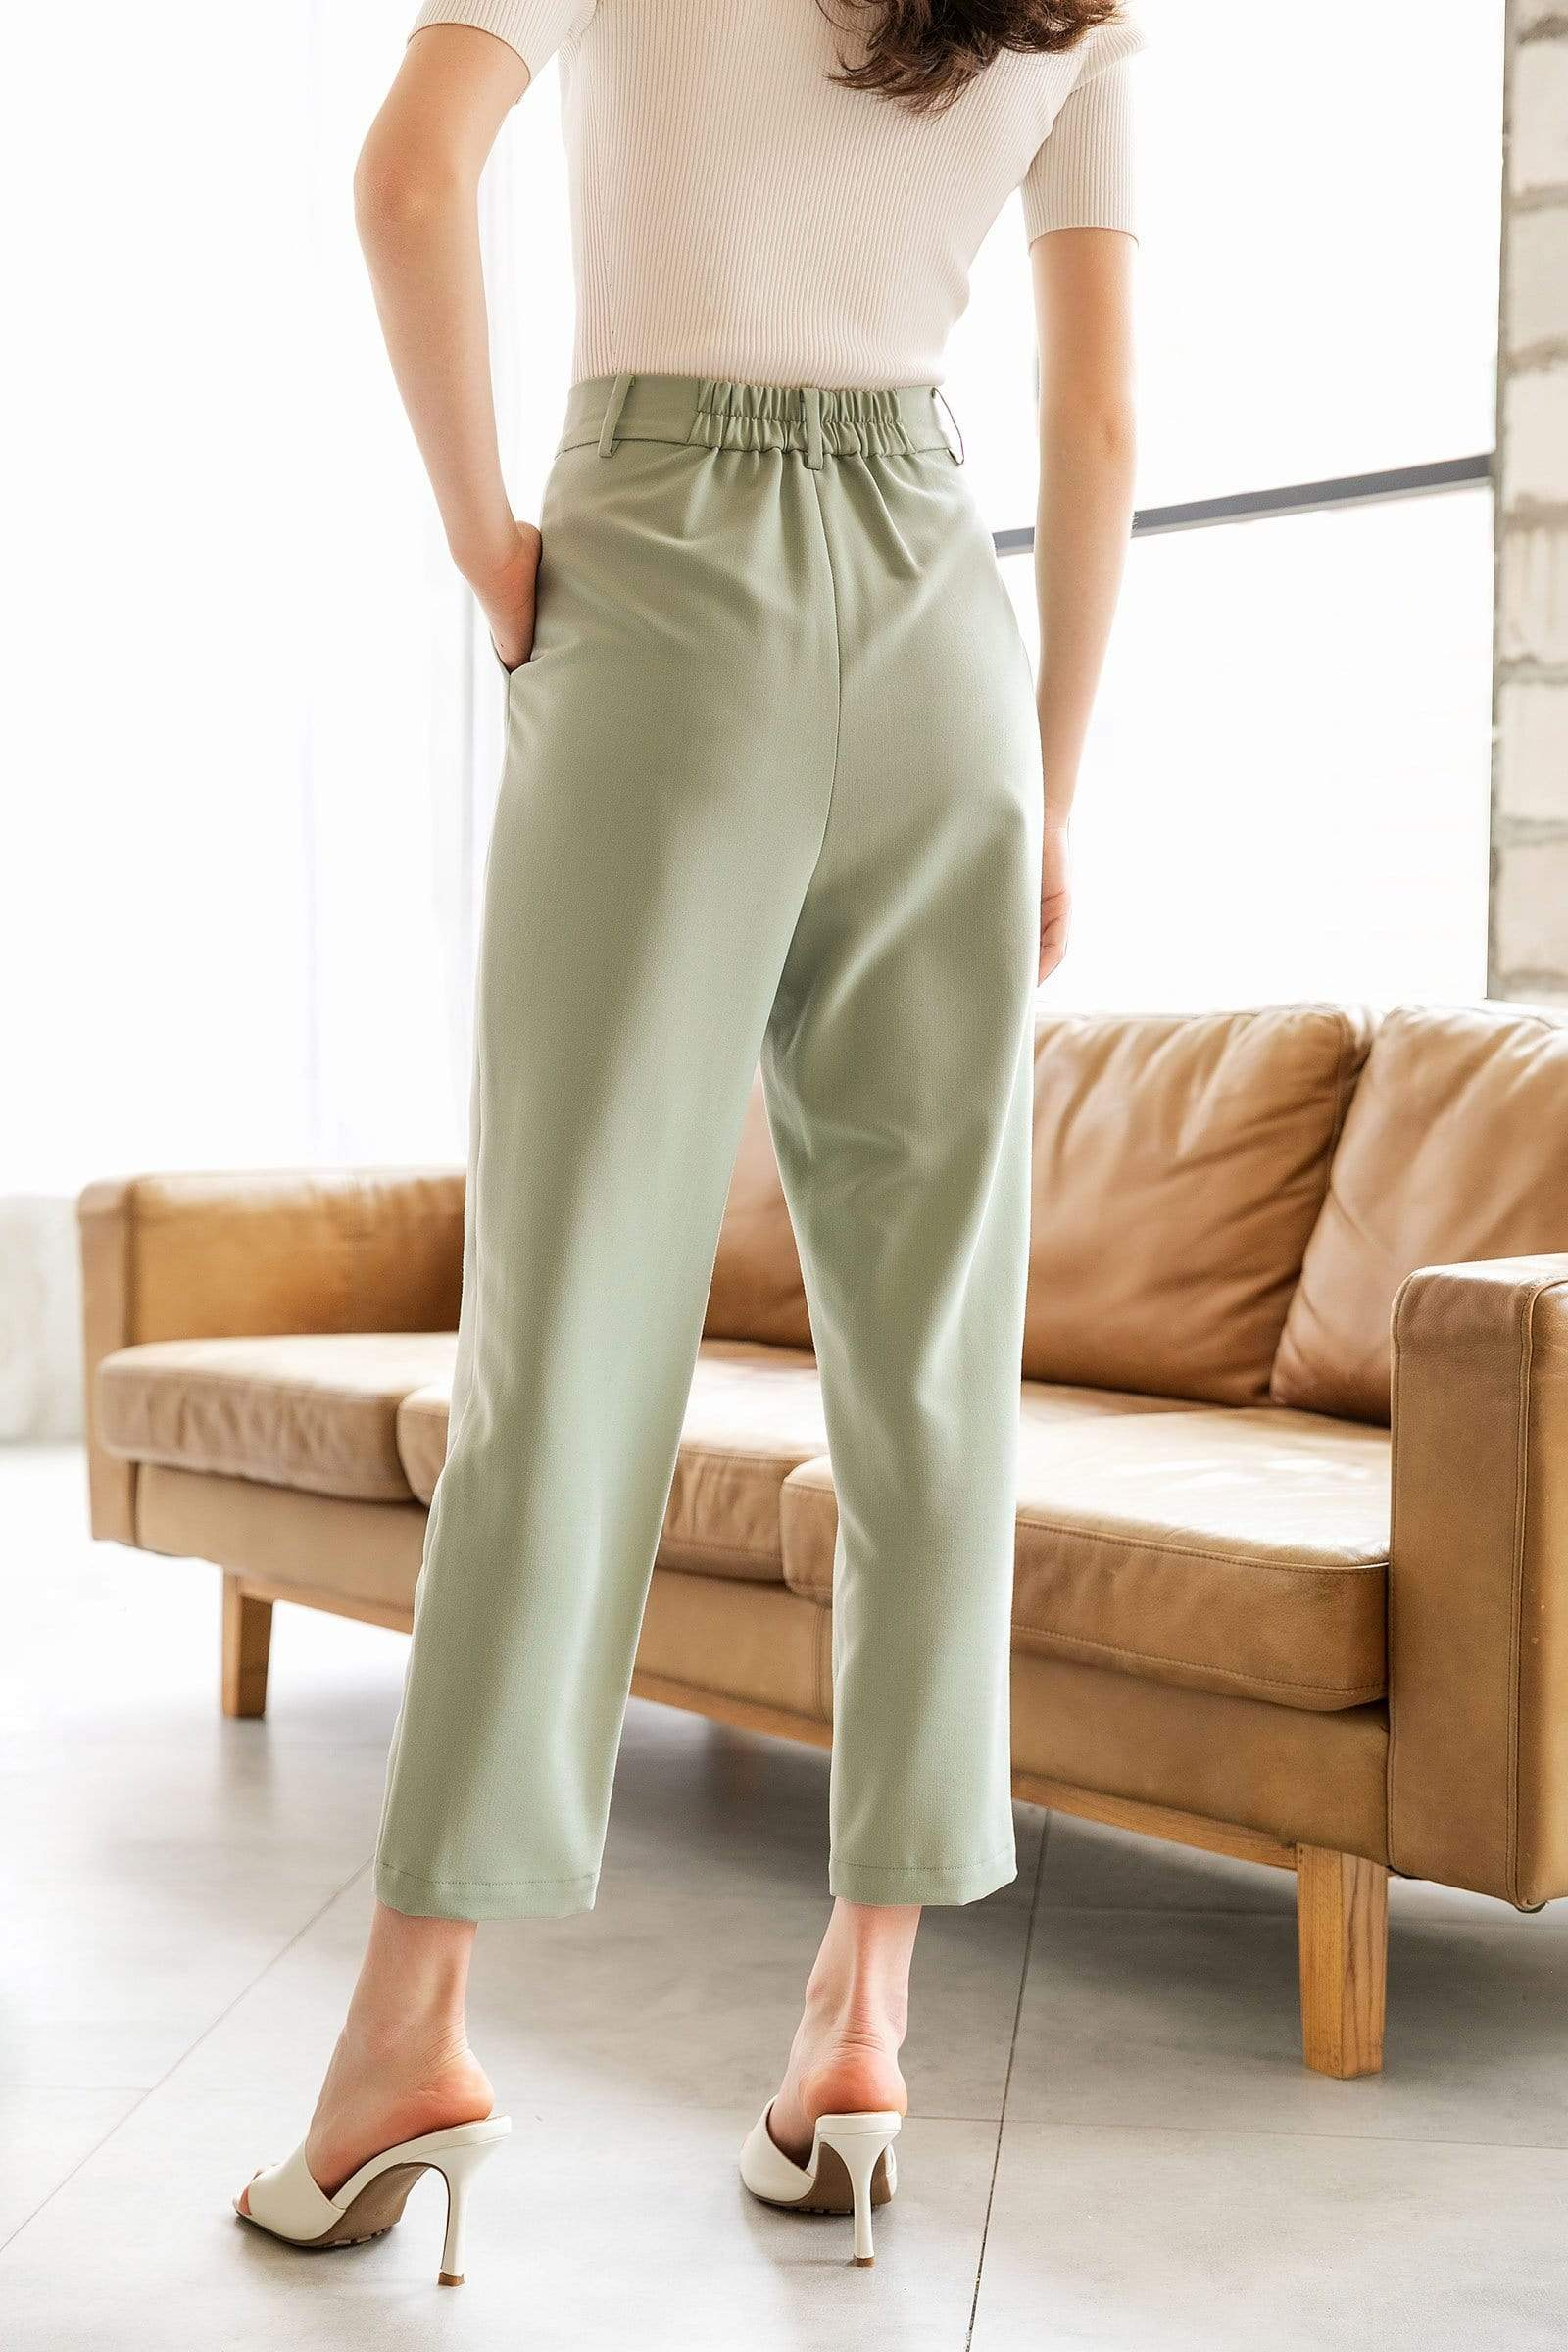 Everly Pistachio Cuffed Trousers